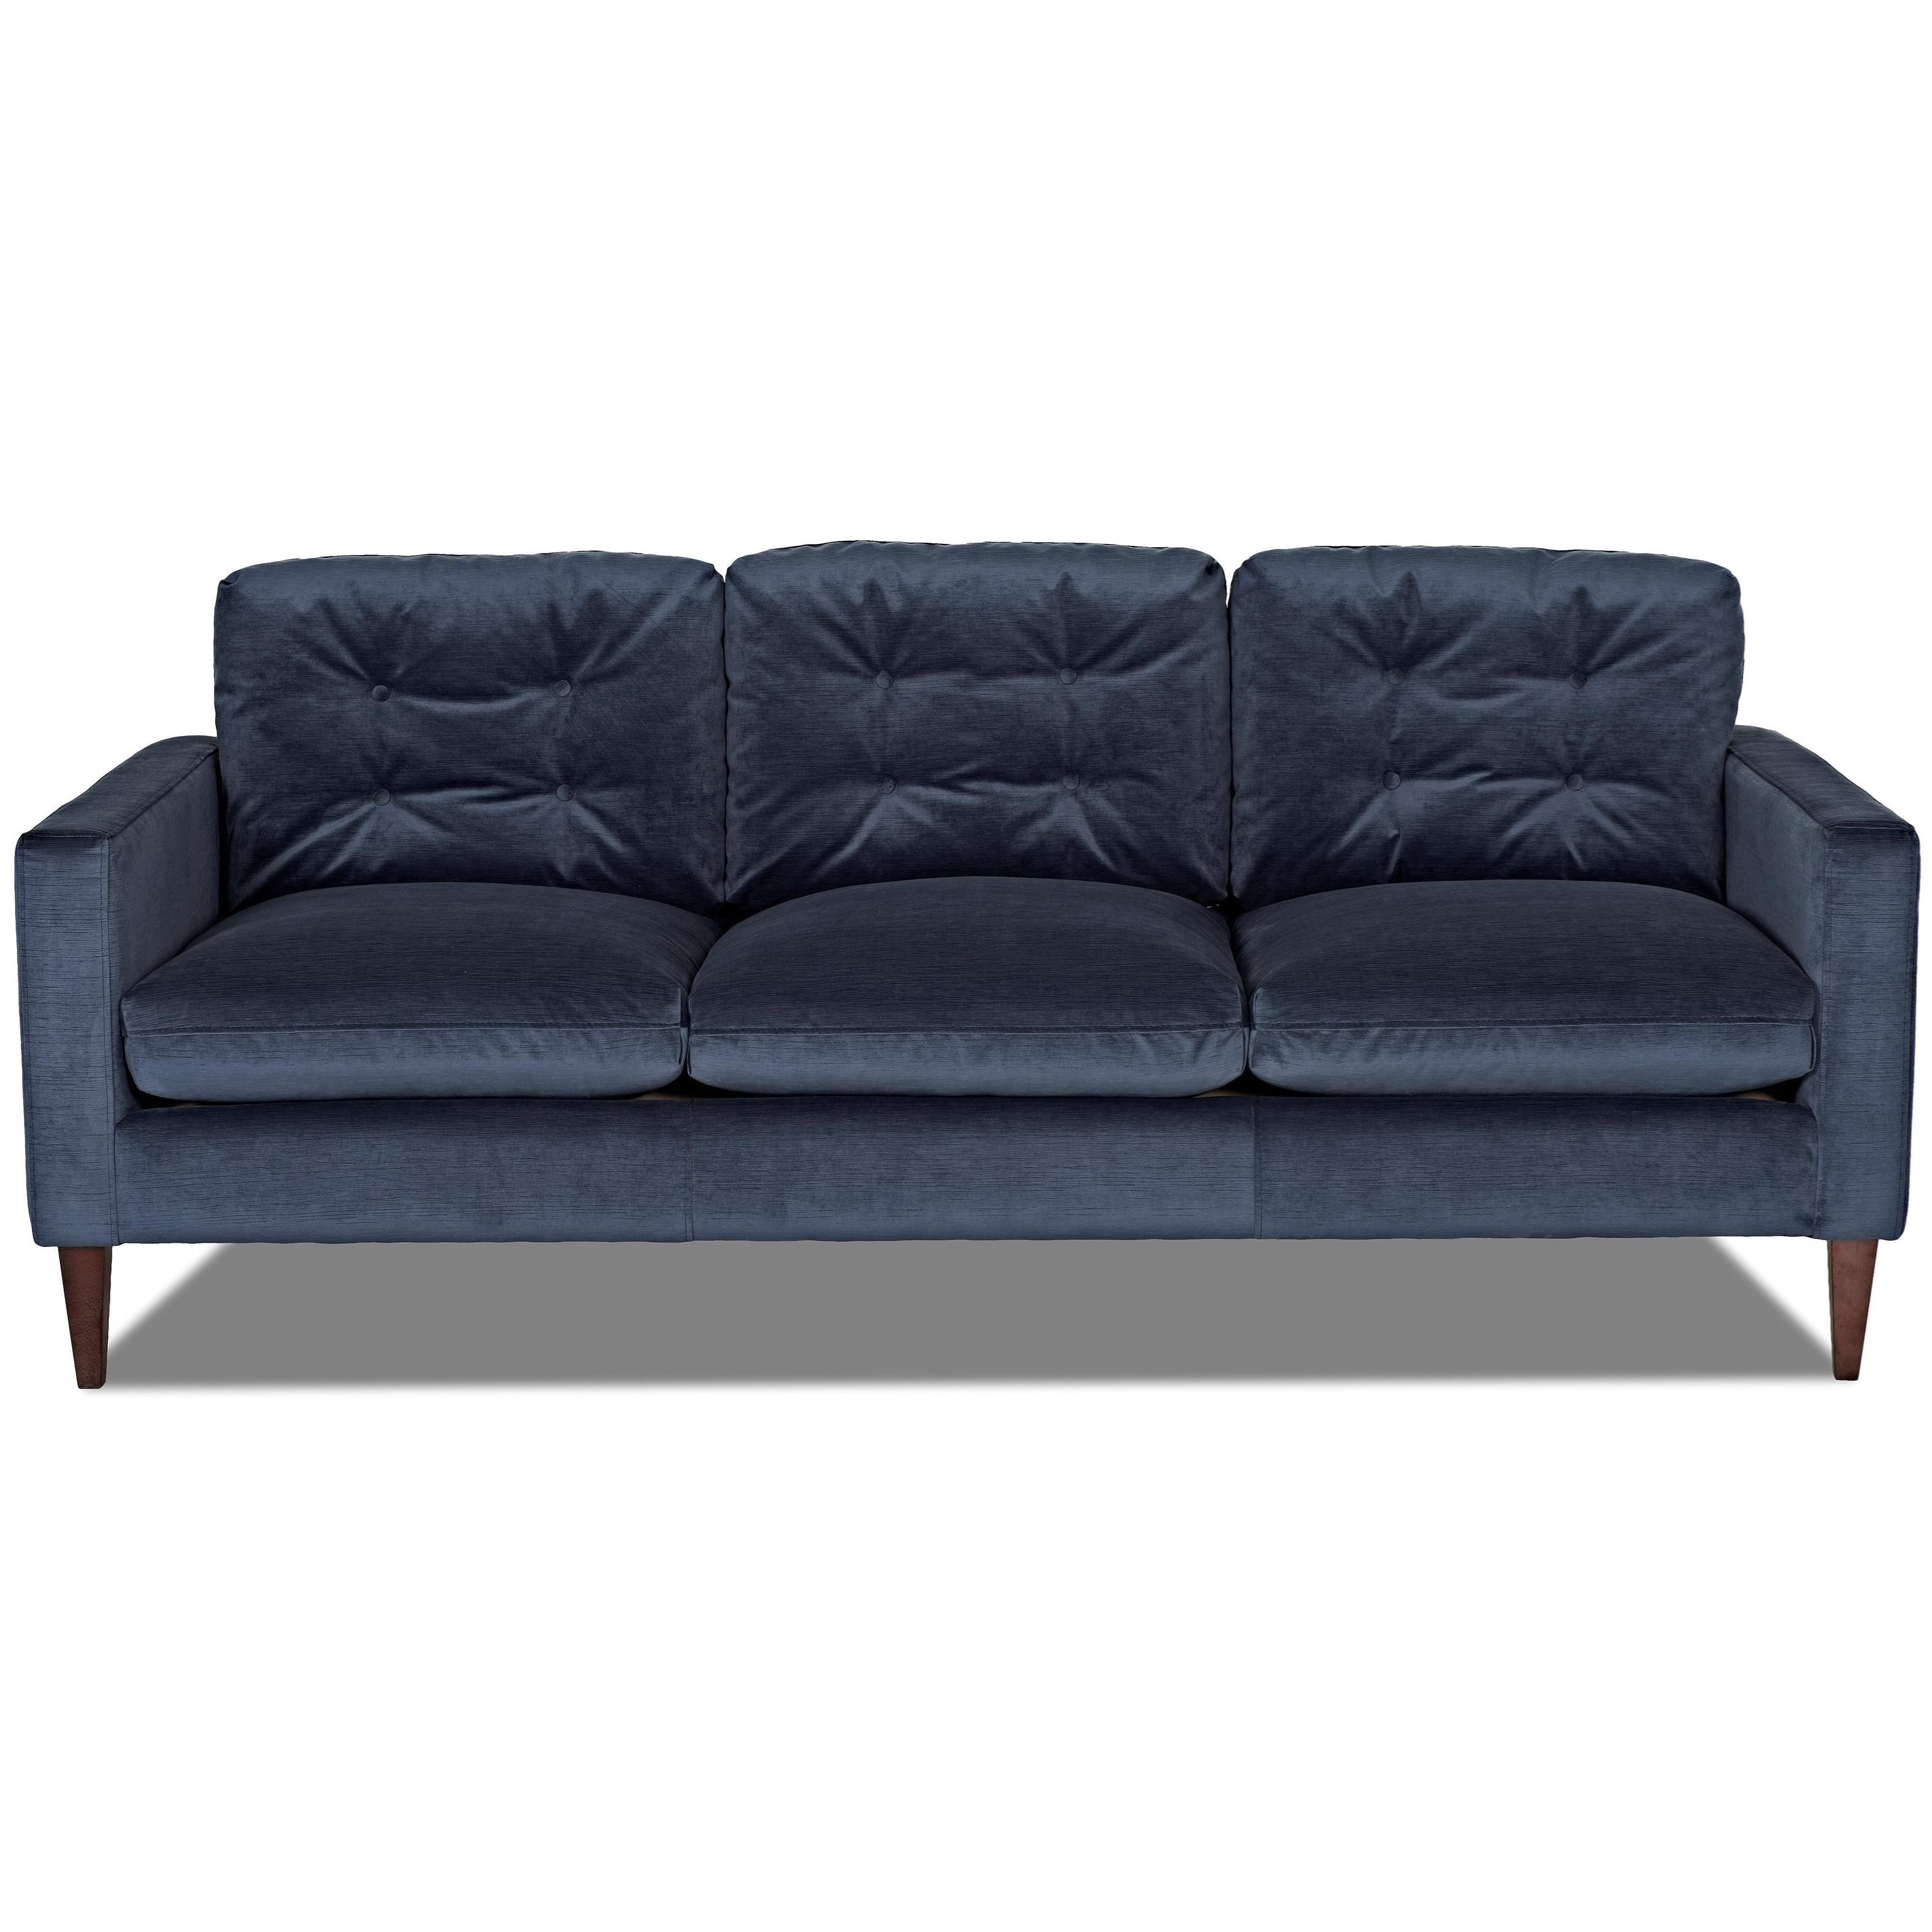 Klaussner Florence Sofa Item Number D2200 S Empire Shadow